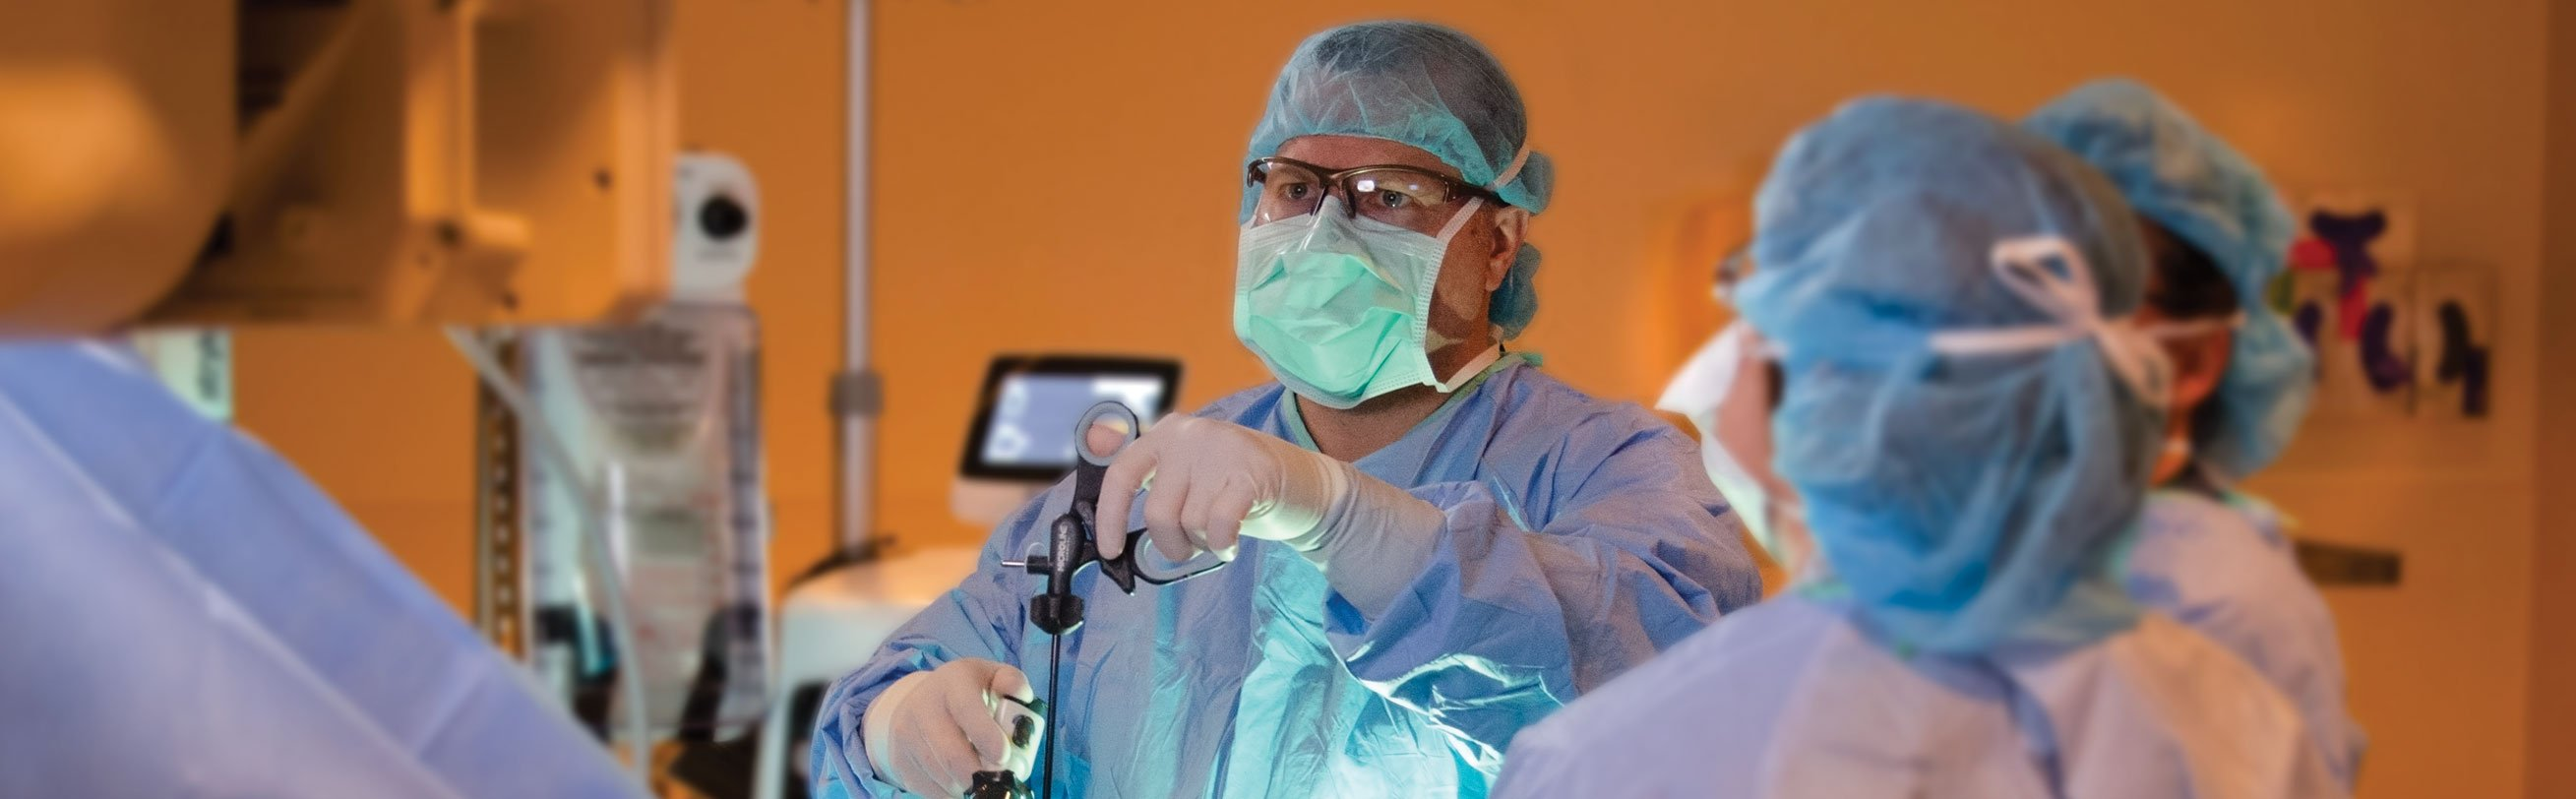 Dr. Matt Morgan performing a gallbladder surgery